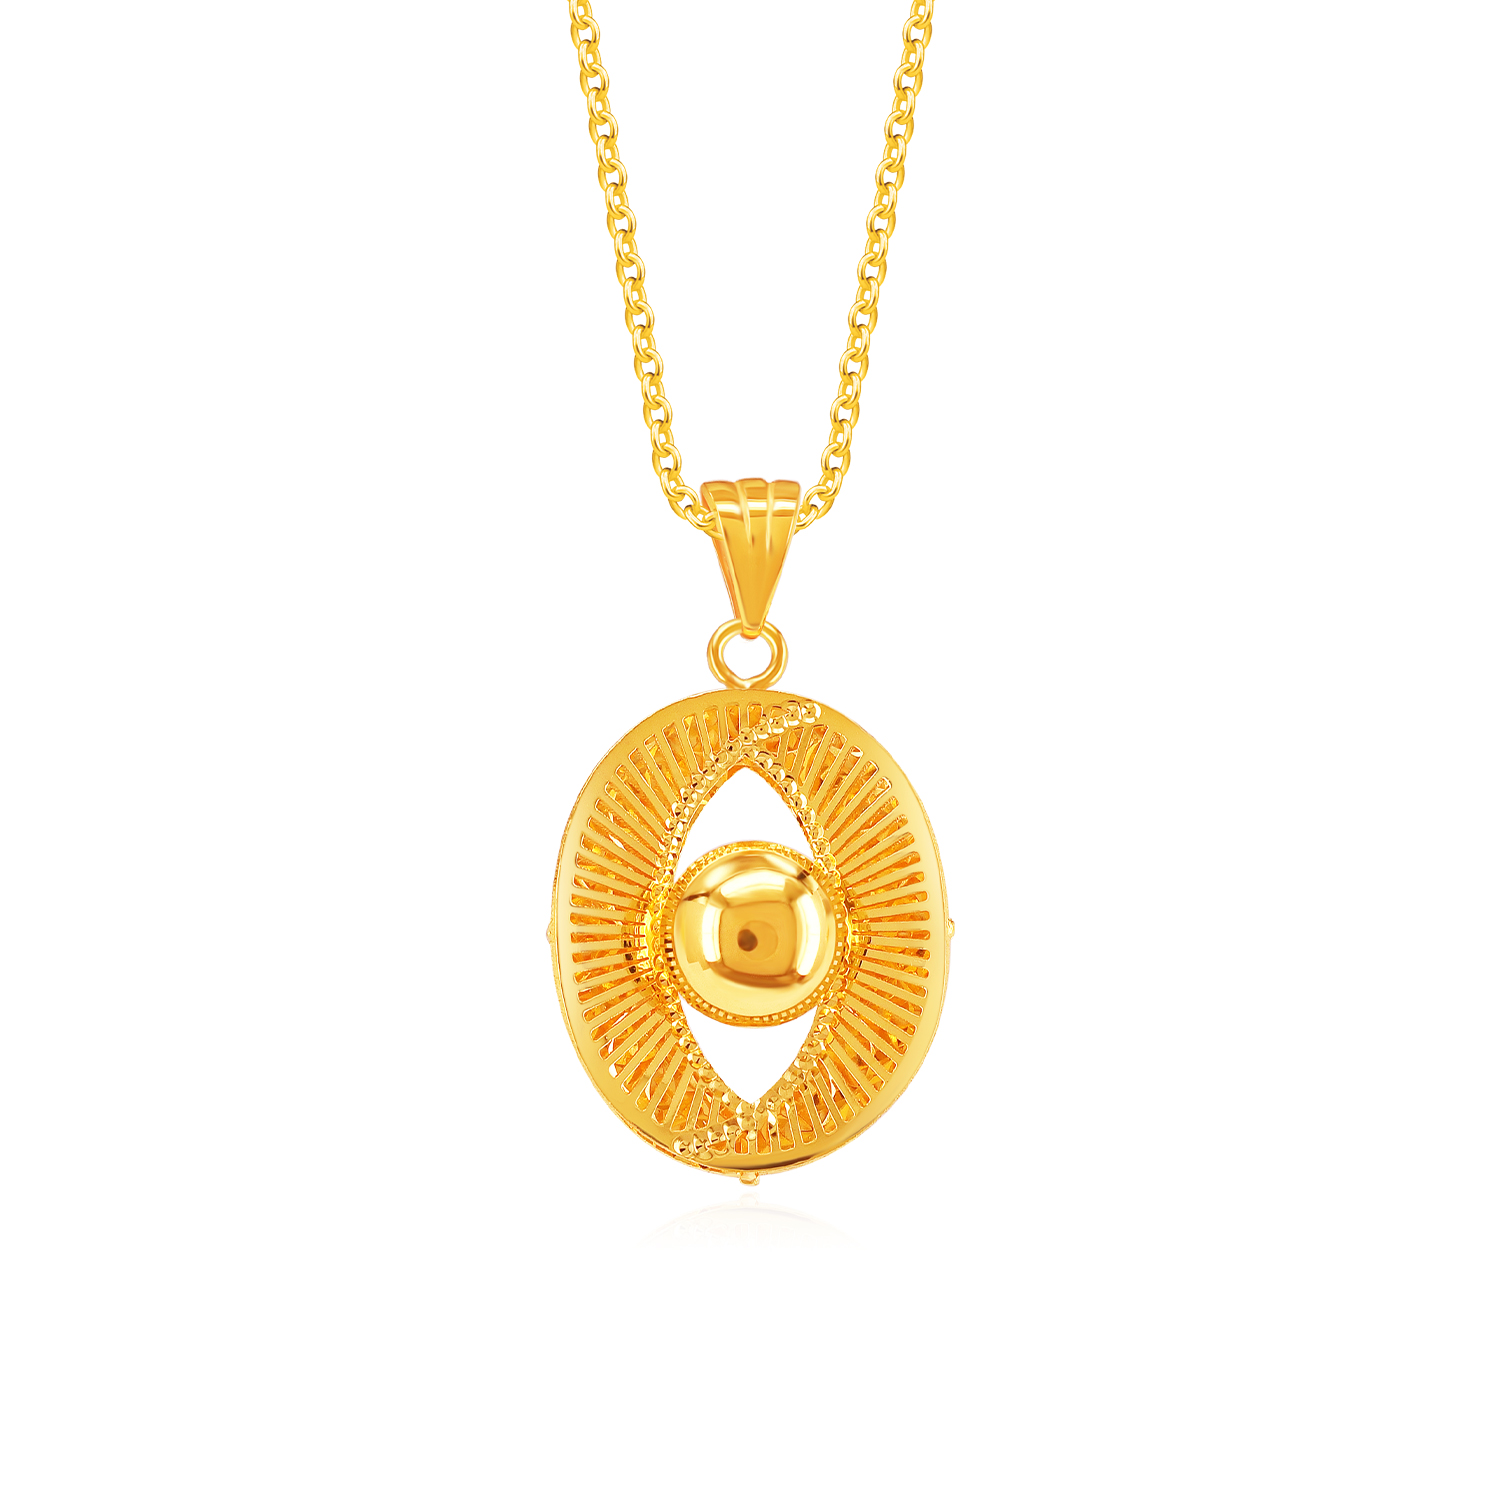 SK 916 Waves of Magnificence Gold Pendant